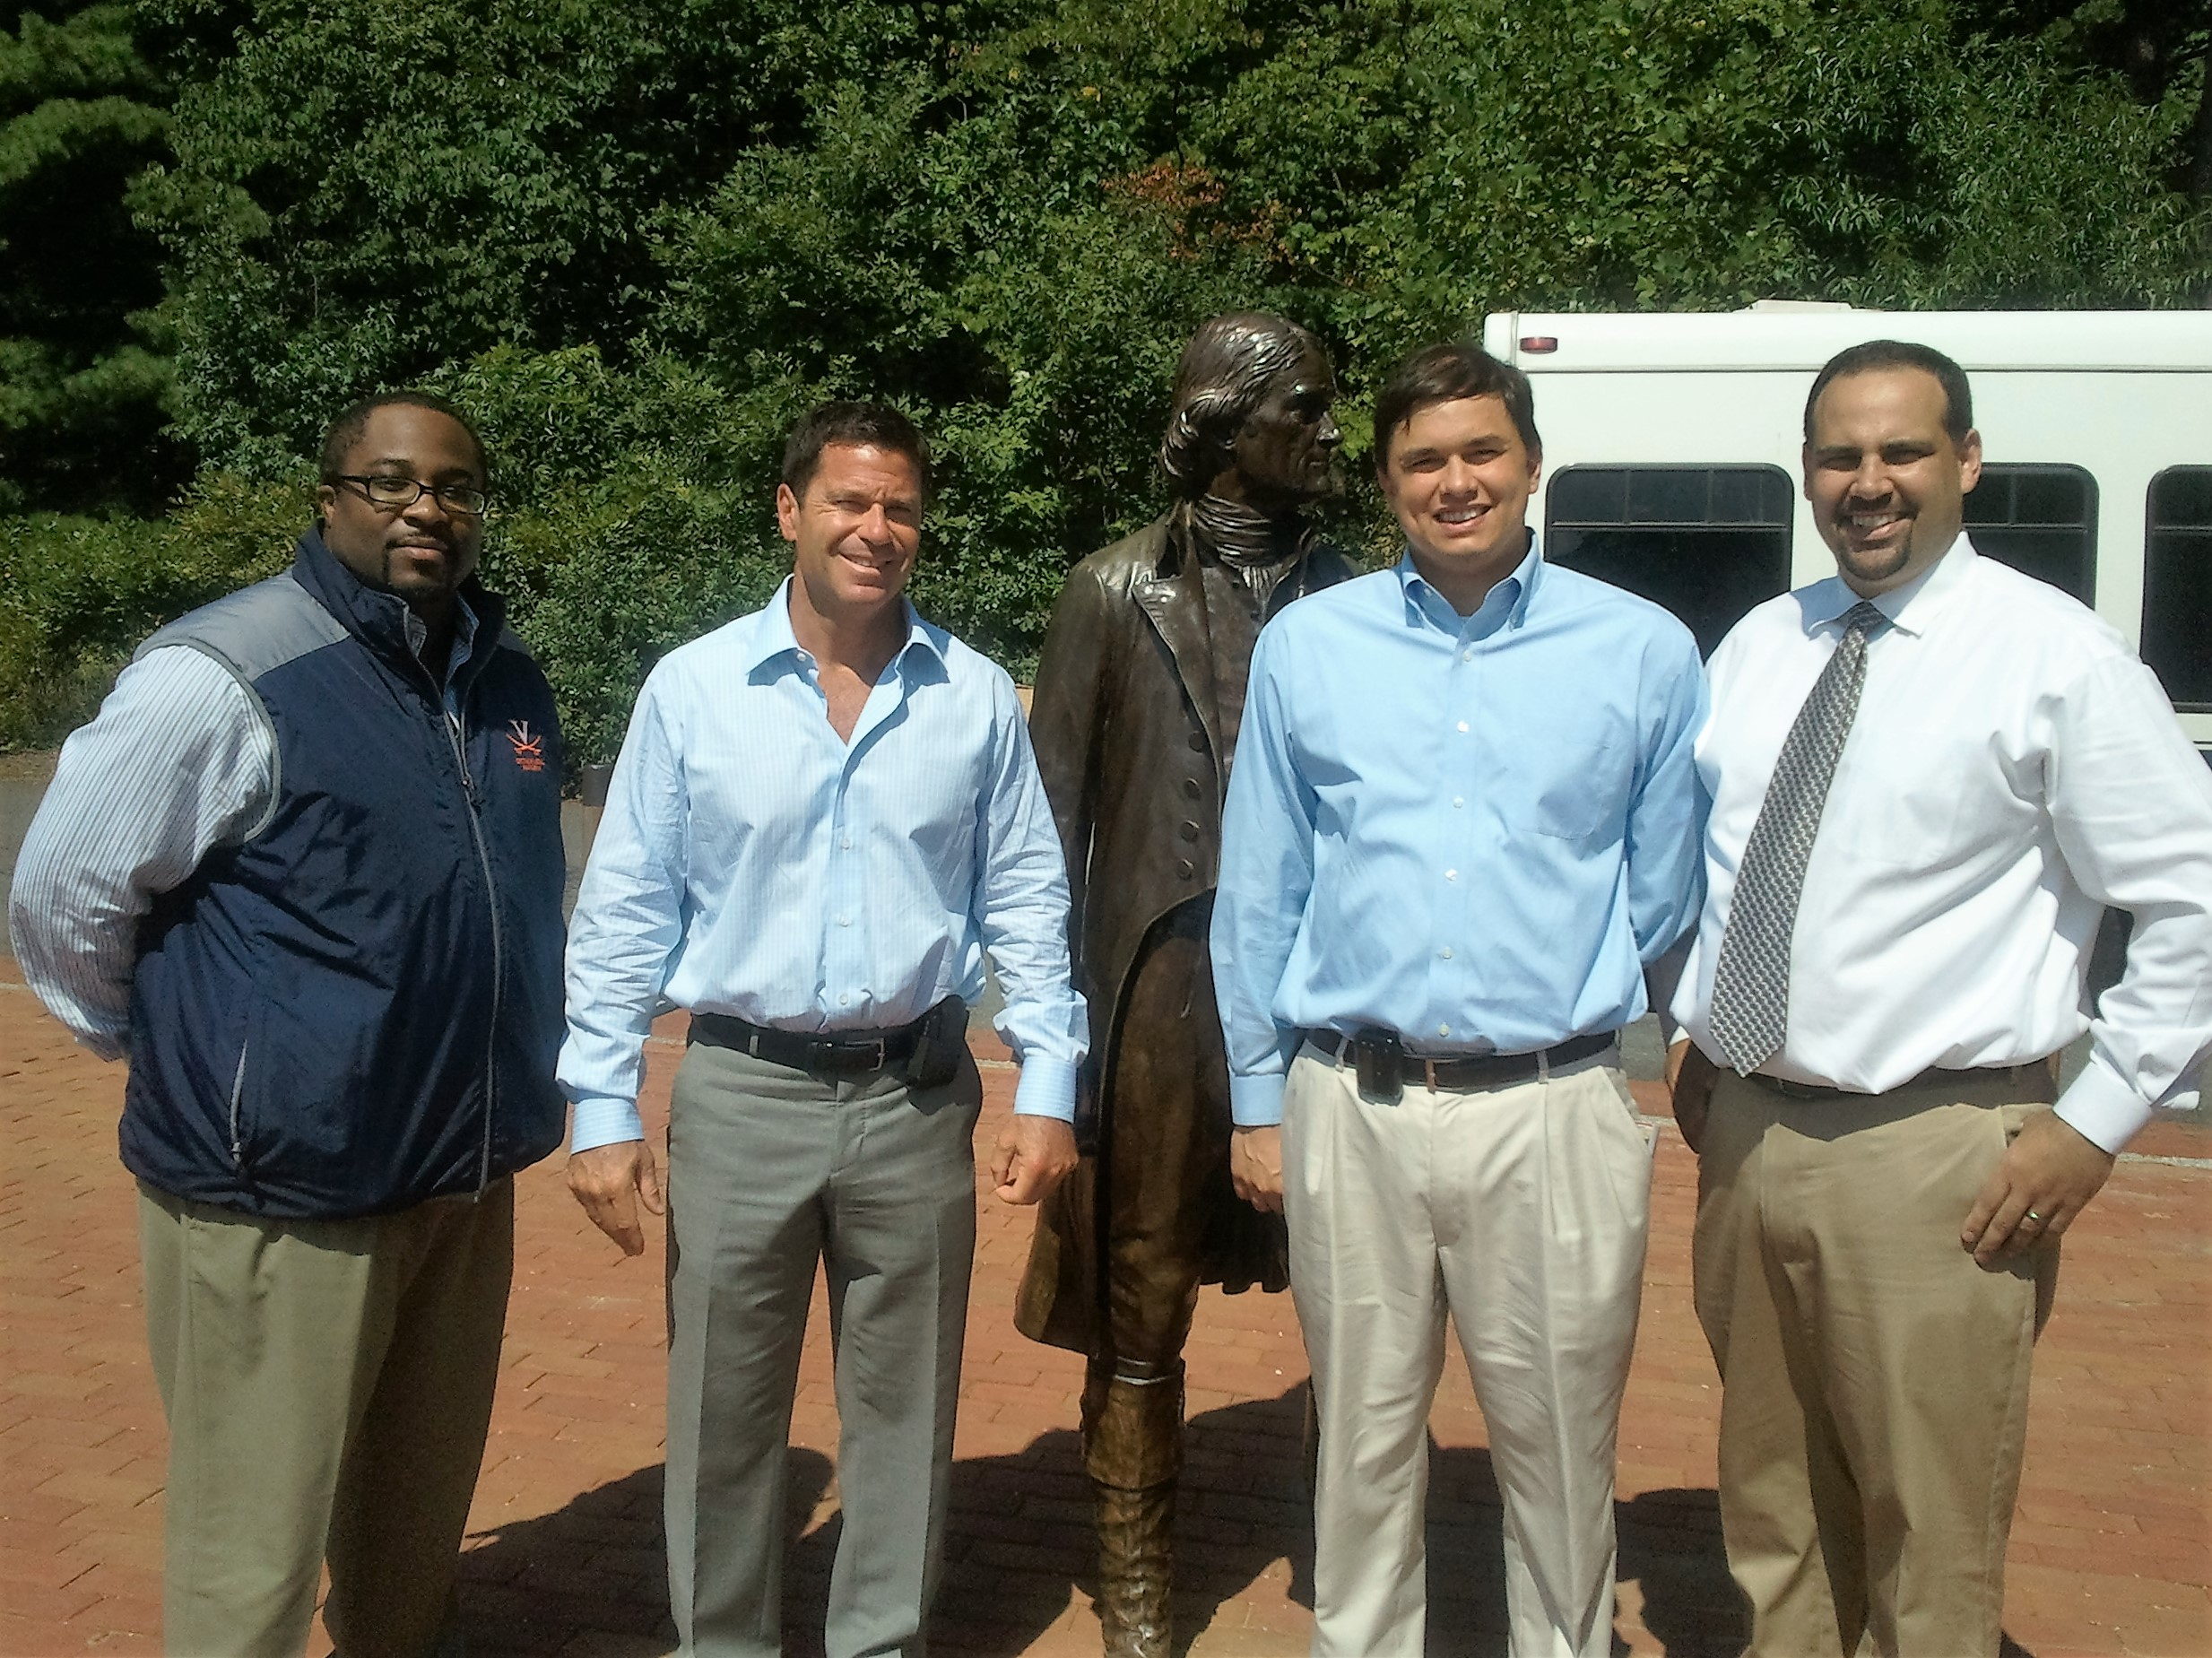 Residents MaC Hogan, Winston Gwathmey, and Marc Haro with Dr. Brian Cole visiting Monticello